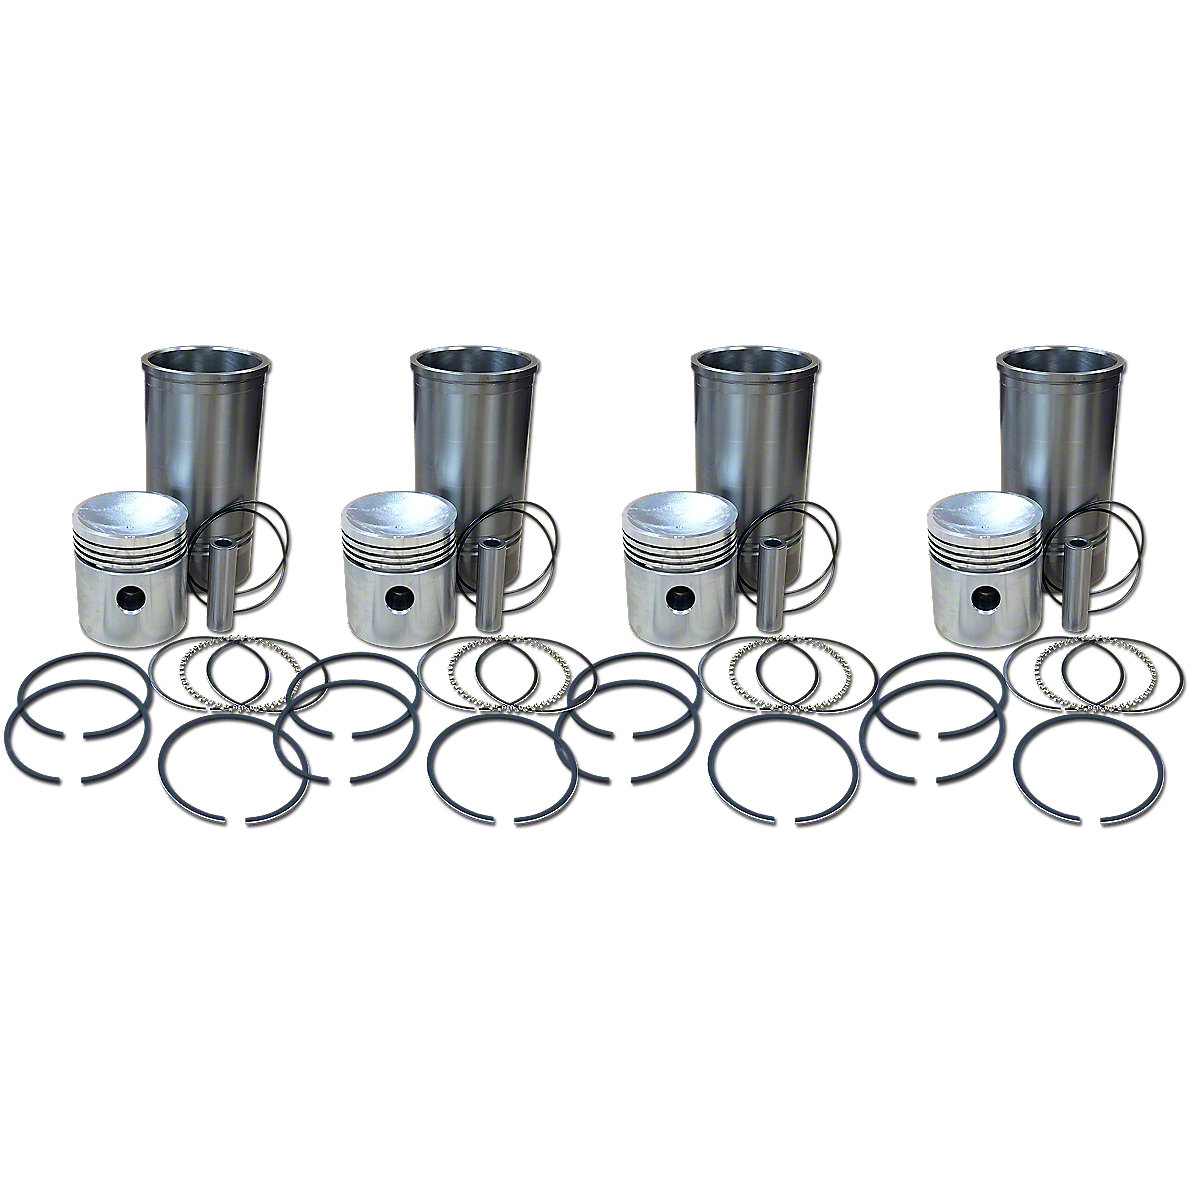 4 Cylinder Piston And Sleeve Kit For Allis Chalmers: D17, WD 45, 170, 175.